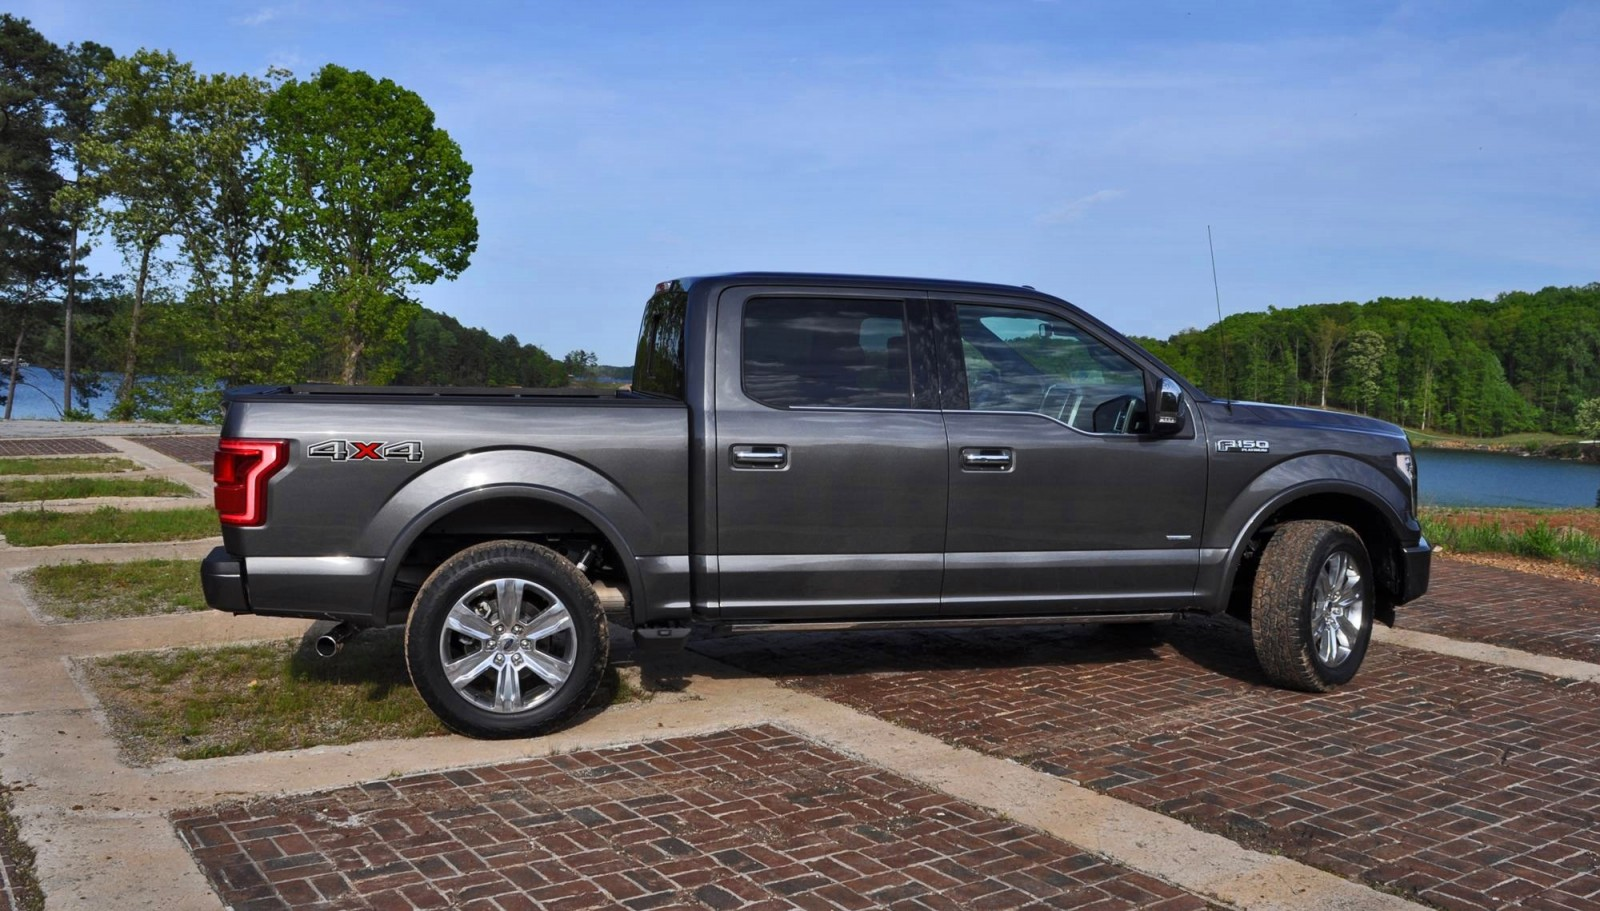 2016 ford f 150 review price 2017 2018 best cars reviews. Black Bedroom Furniture Sets. Home Design Ideas